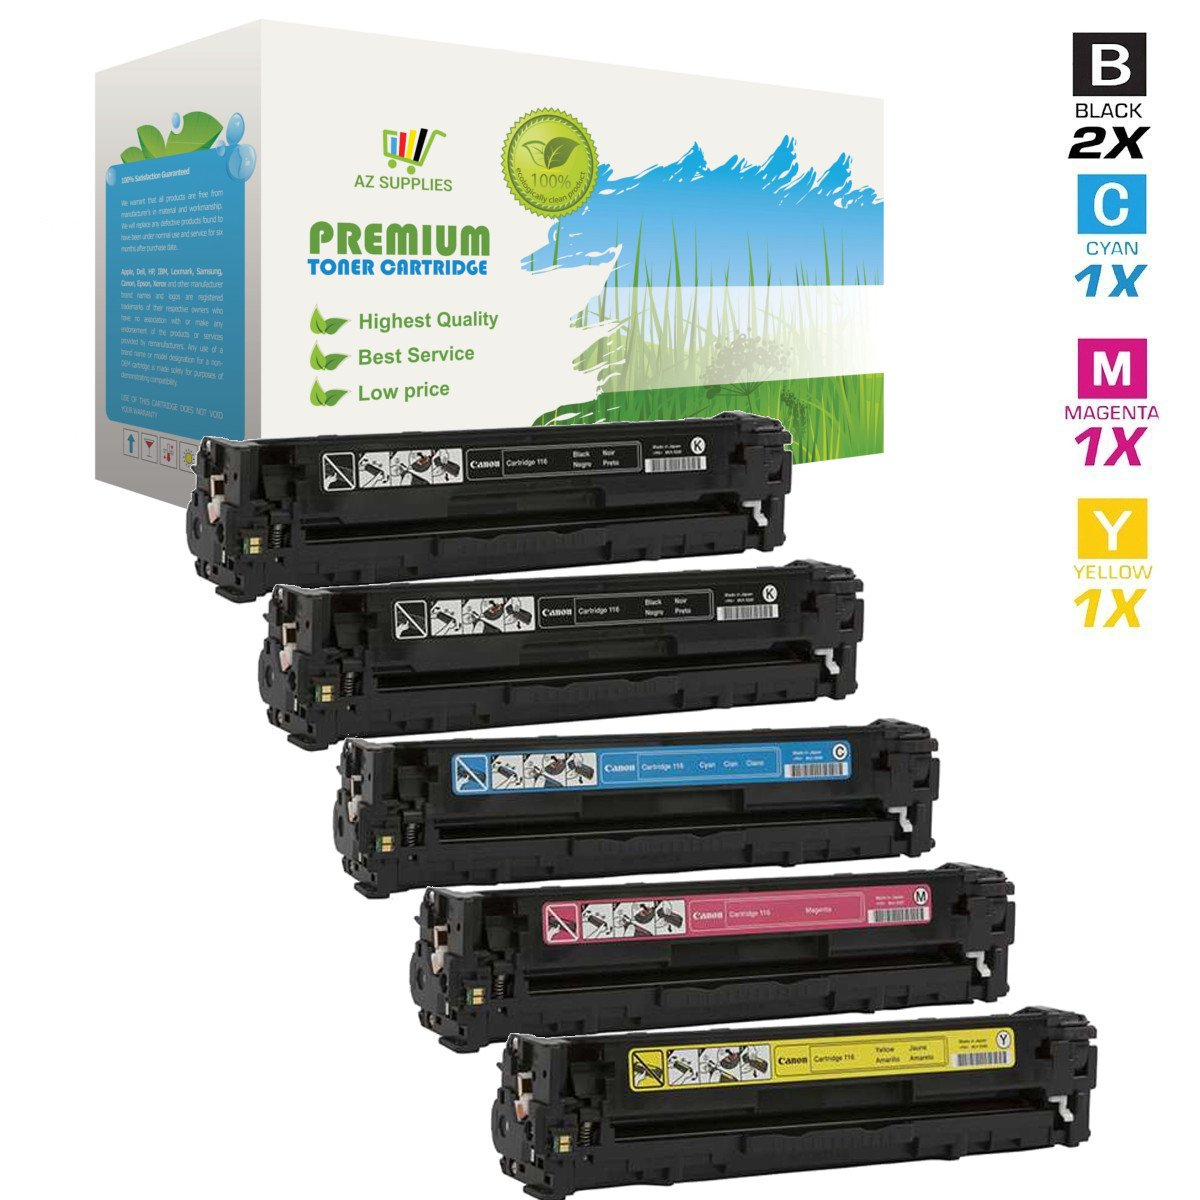 AZ Supplies © Compatible Replacement Toner Cartridge for Canon 116, 5 Color Set (2 x Black, Cyan, Magenta, Yellow) Toner for use in Canon i-Sensys LBP5050N, Image Class MF8030CN, MF8050CN, imageCLASS MF8080CW, HP Color Laser Jet CM1312nfi MFP, CP1215, CP